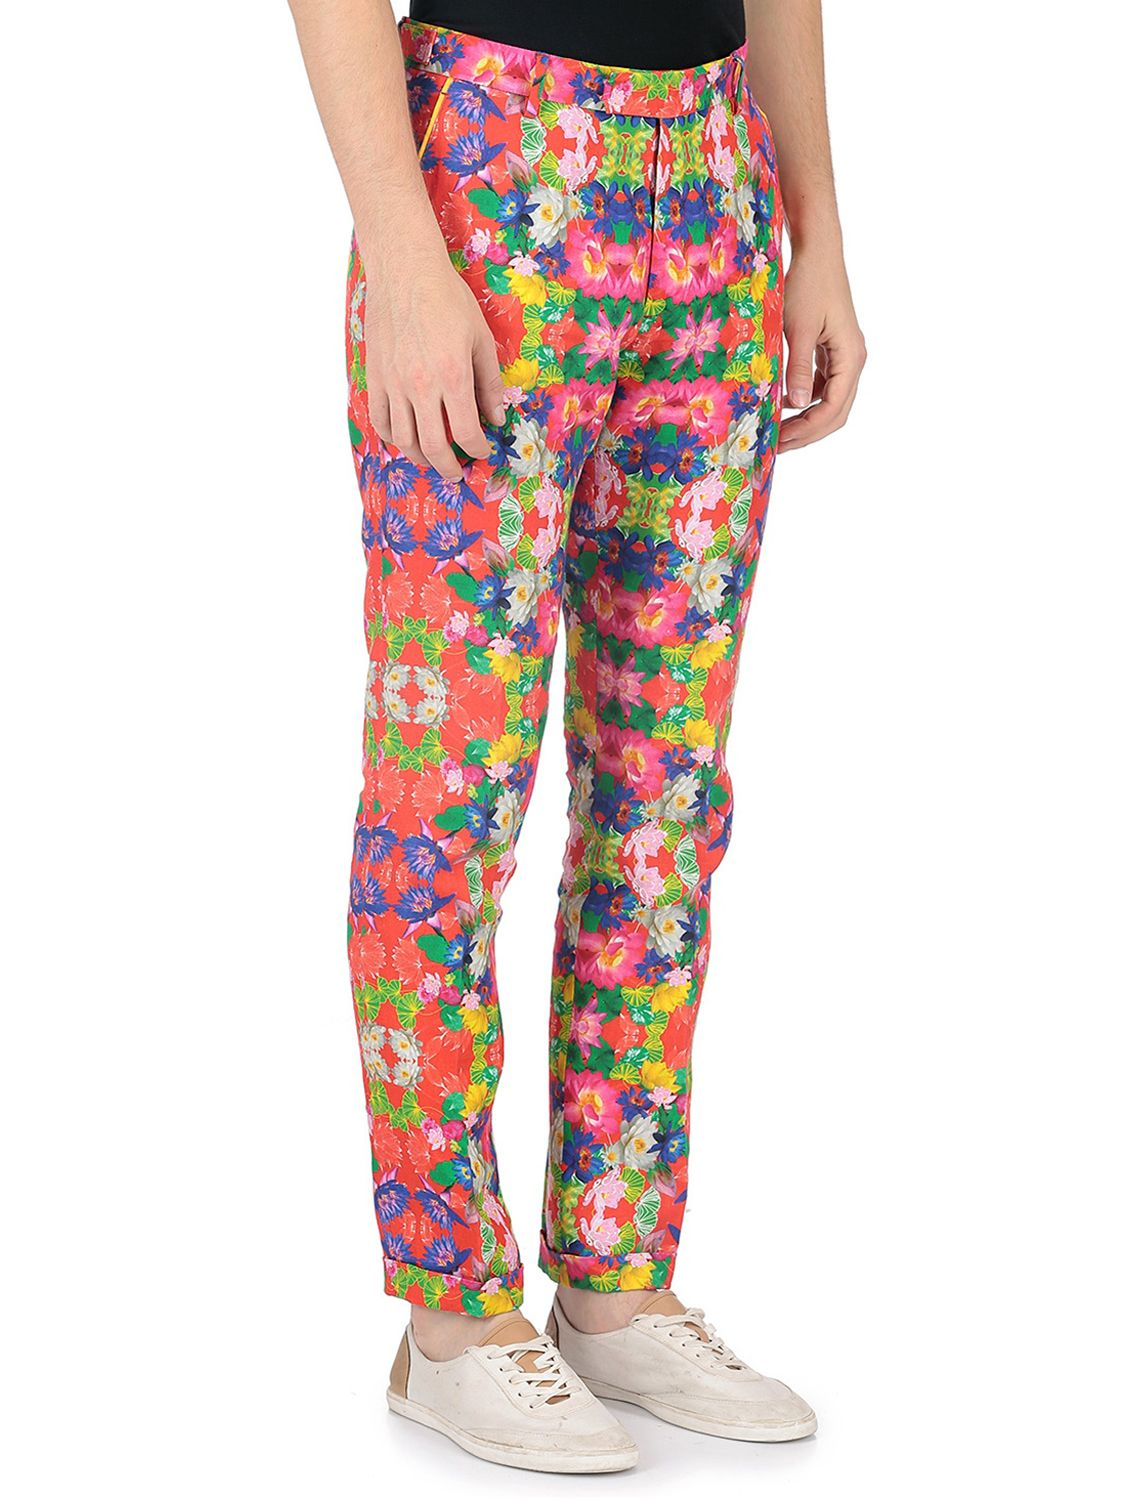 Alarka Printed Trousers